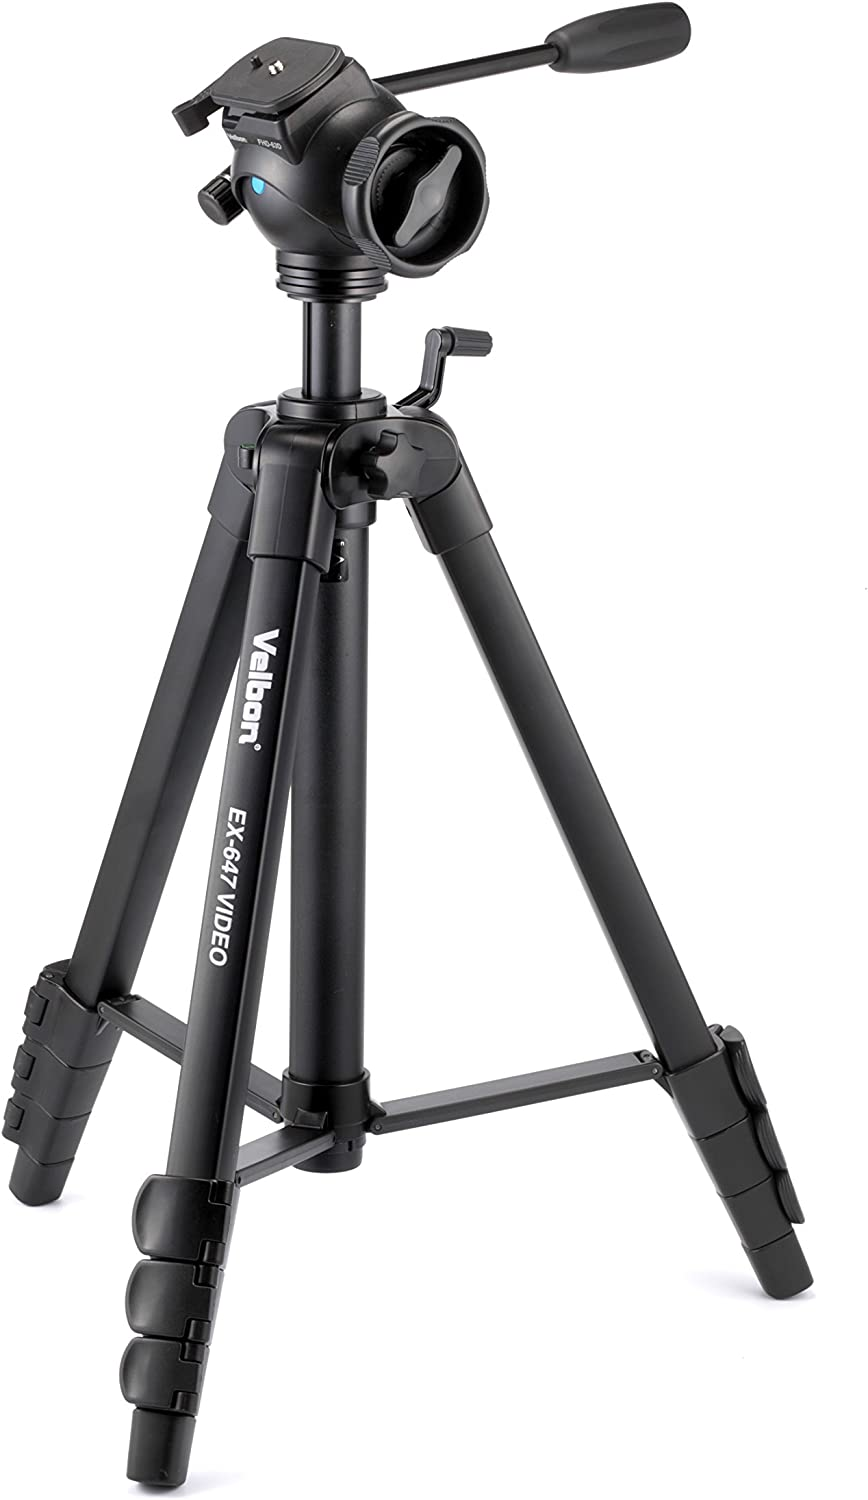 FHD-63D Velbon EX-647 Video 68 inch Video Tripod with Fluid Head with Quick Release Plate